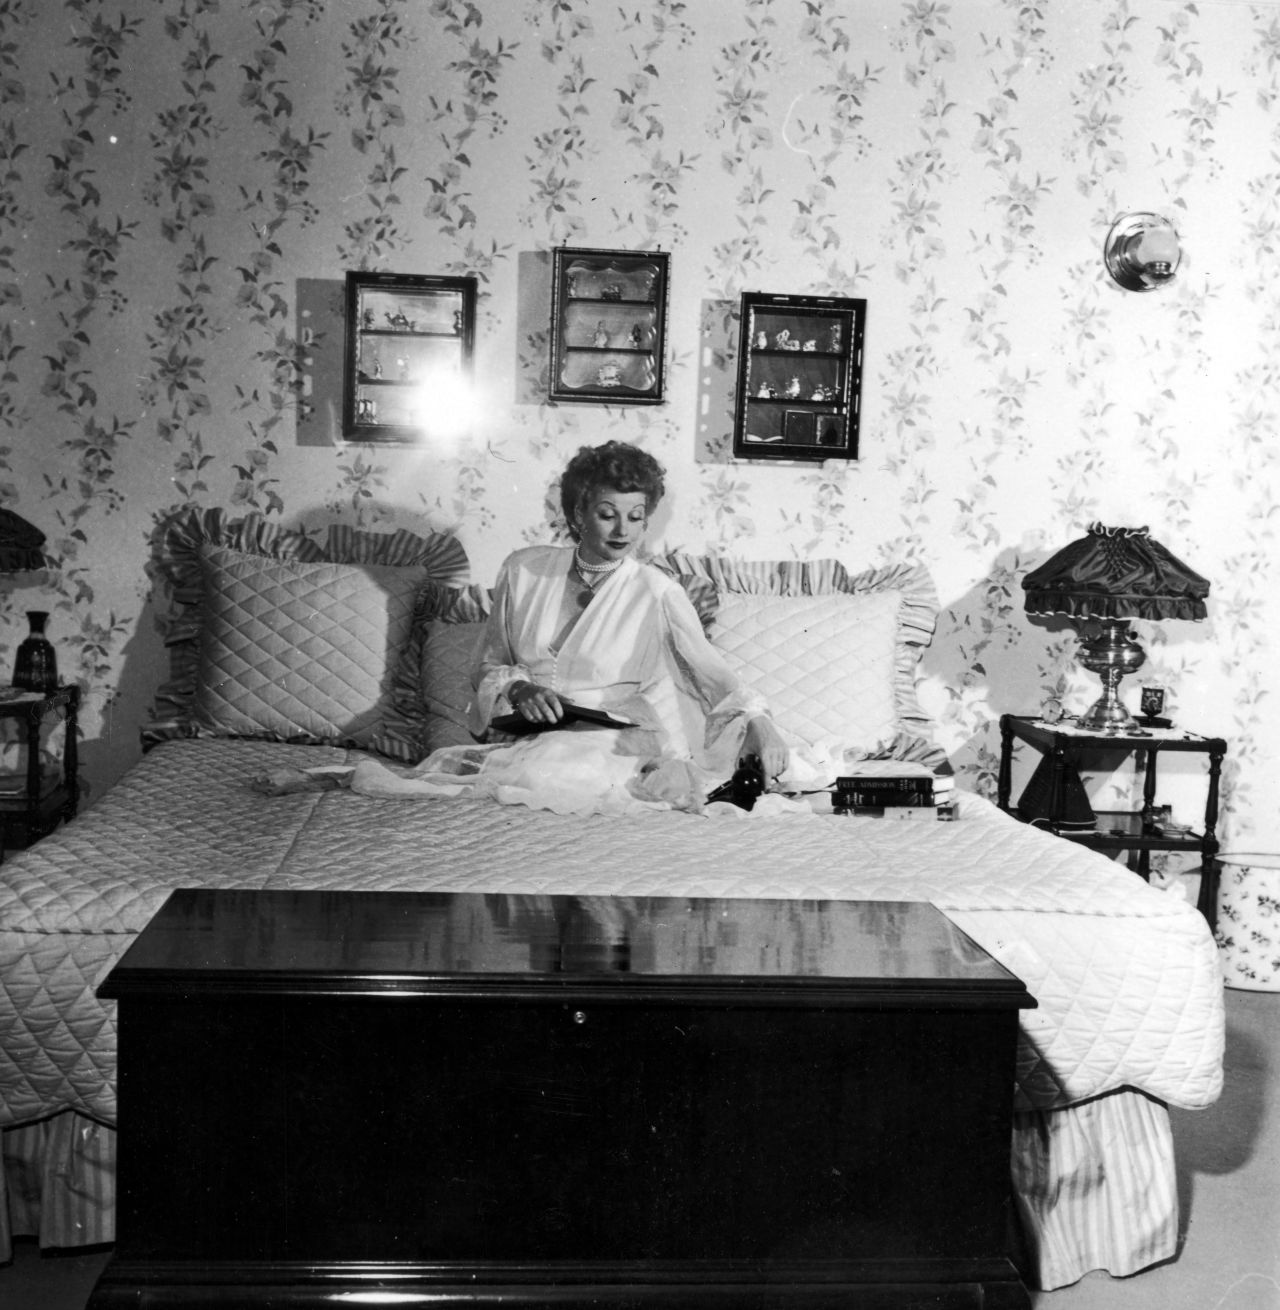 gallery-1436471039-lucy-bedroom-archive-photos.jpg